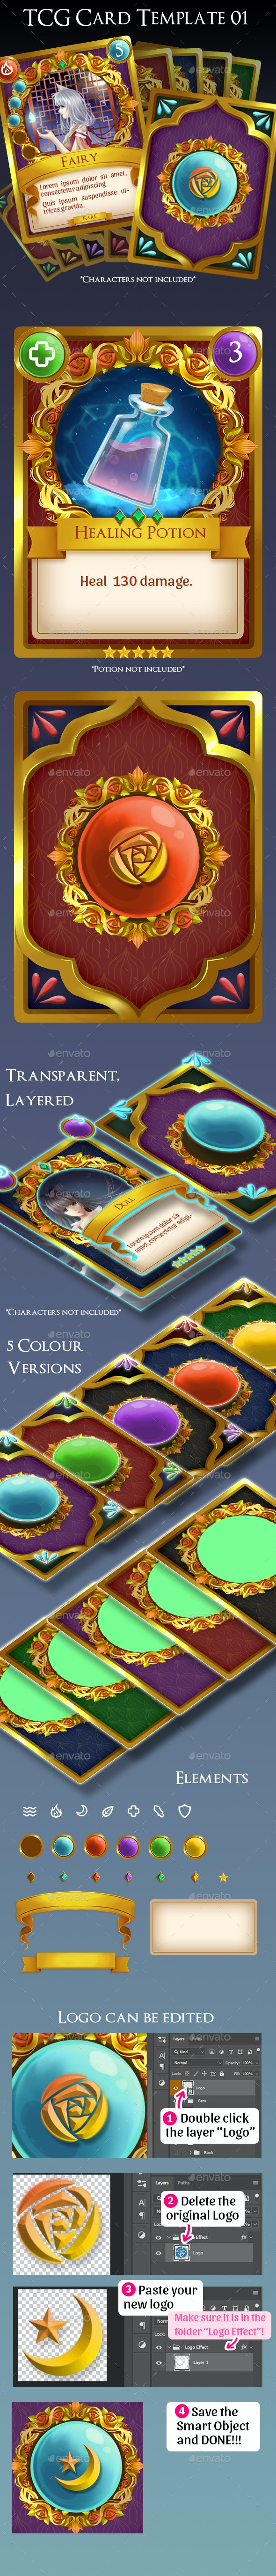 TCG Card Template 01 - Miscellaneous Game Assets